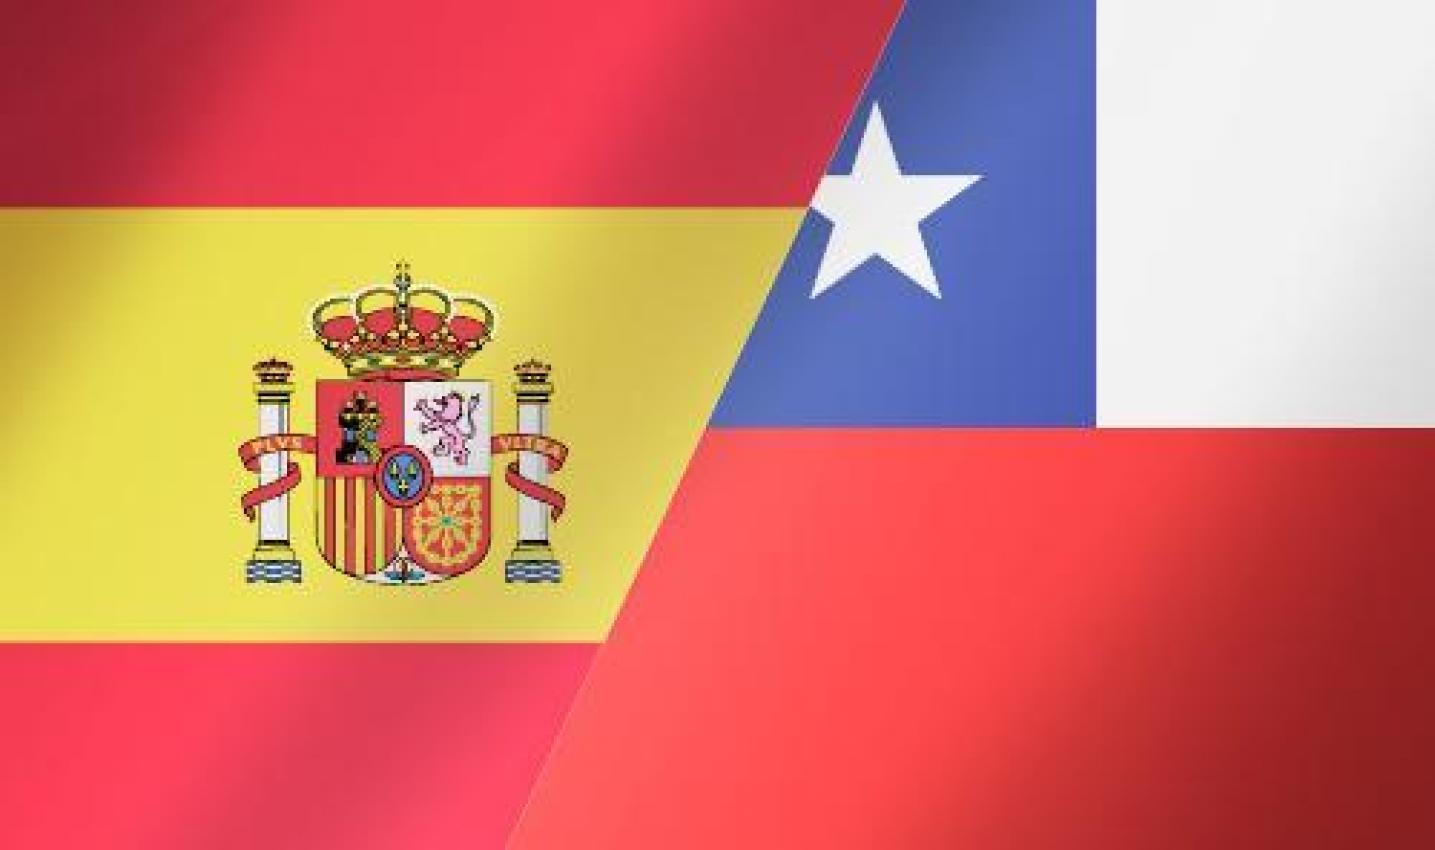 Spain vs Chile Preview and Predicted Lineups for World Cup Clash